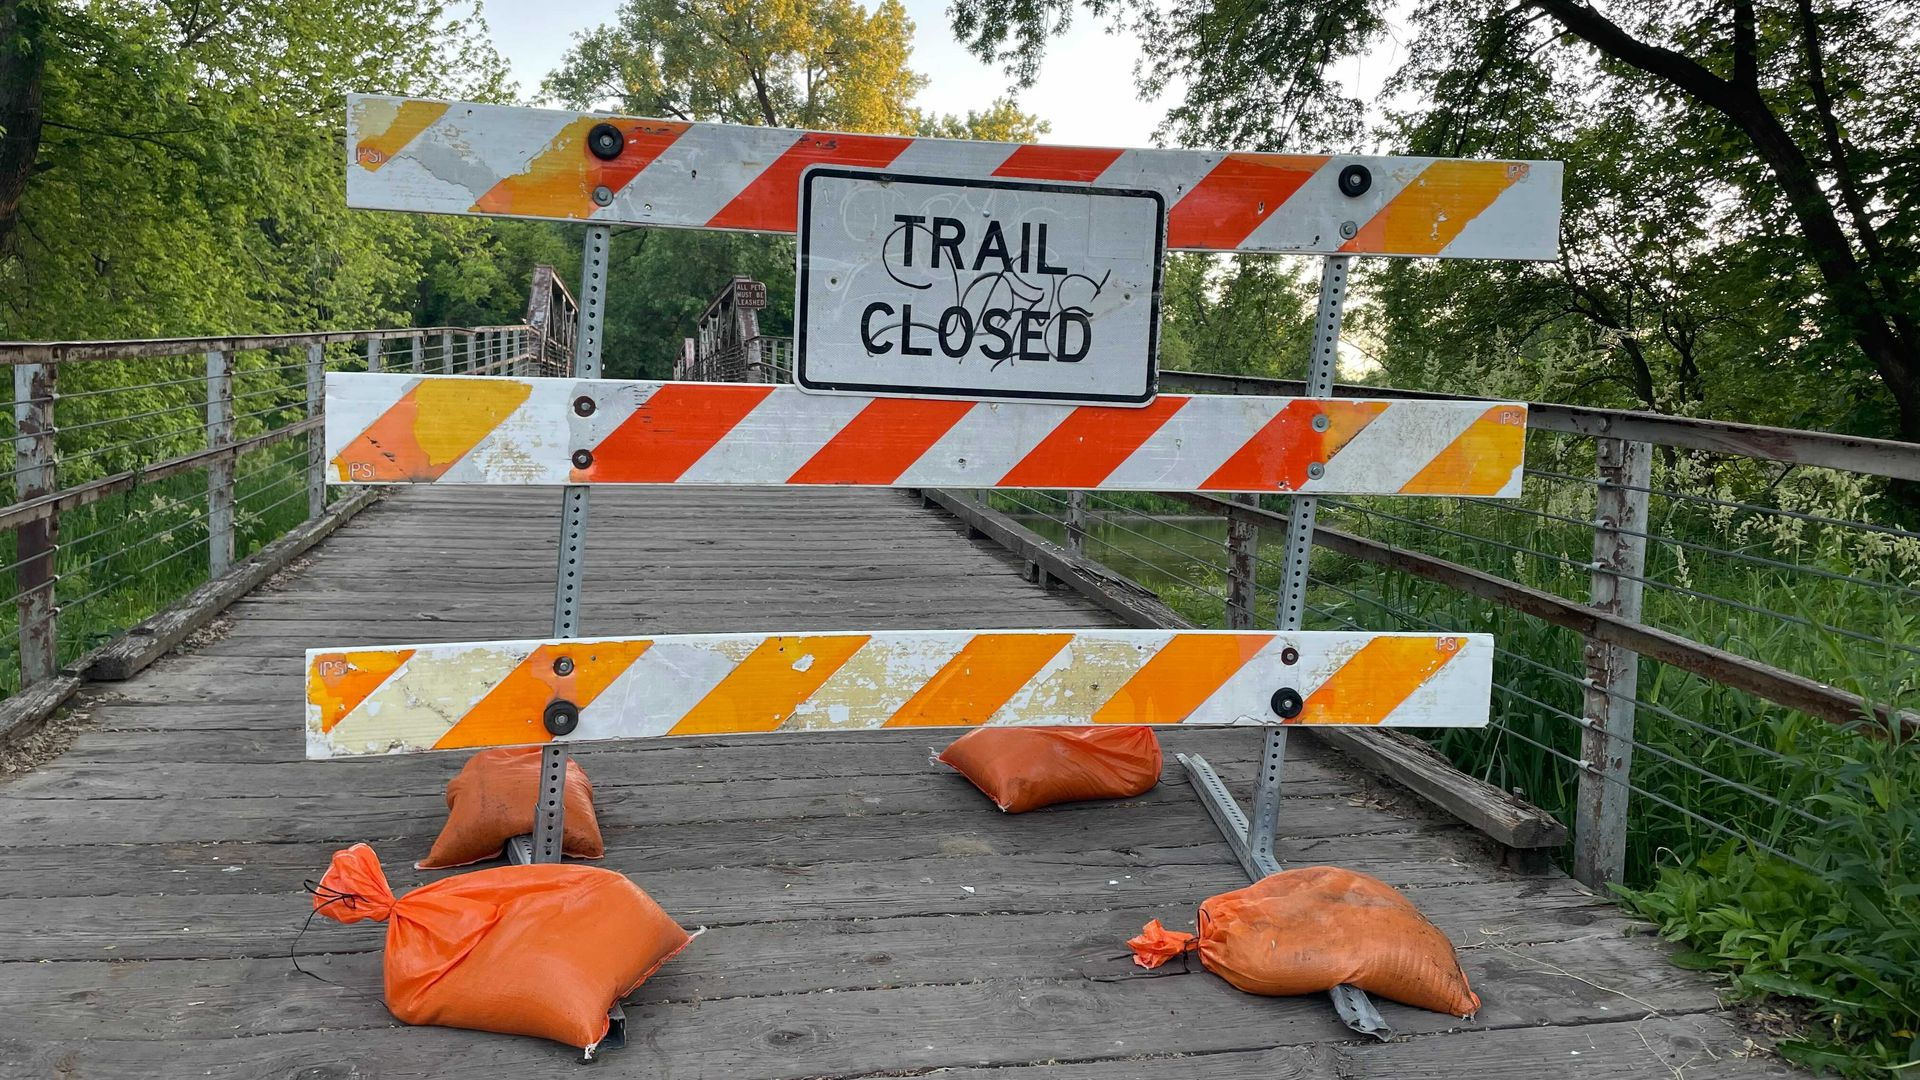 Trail closed sign by Des Moines Water Works.